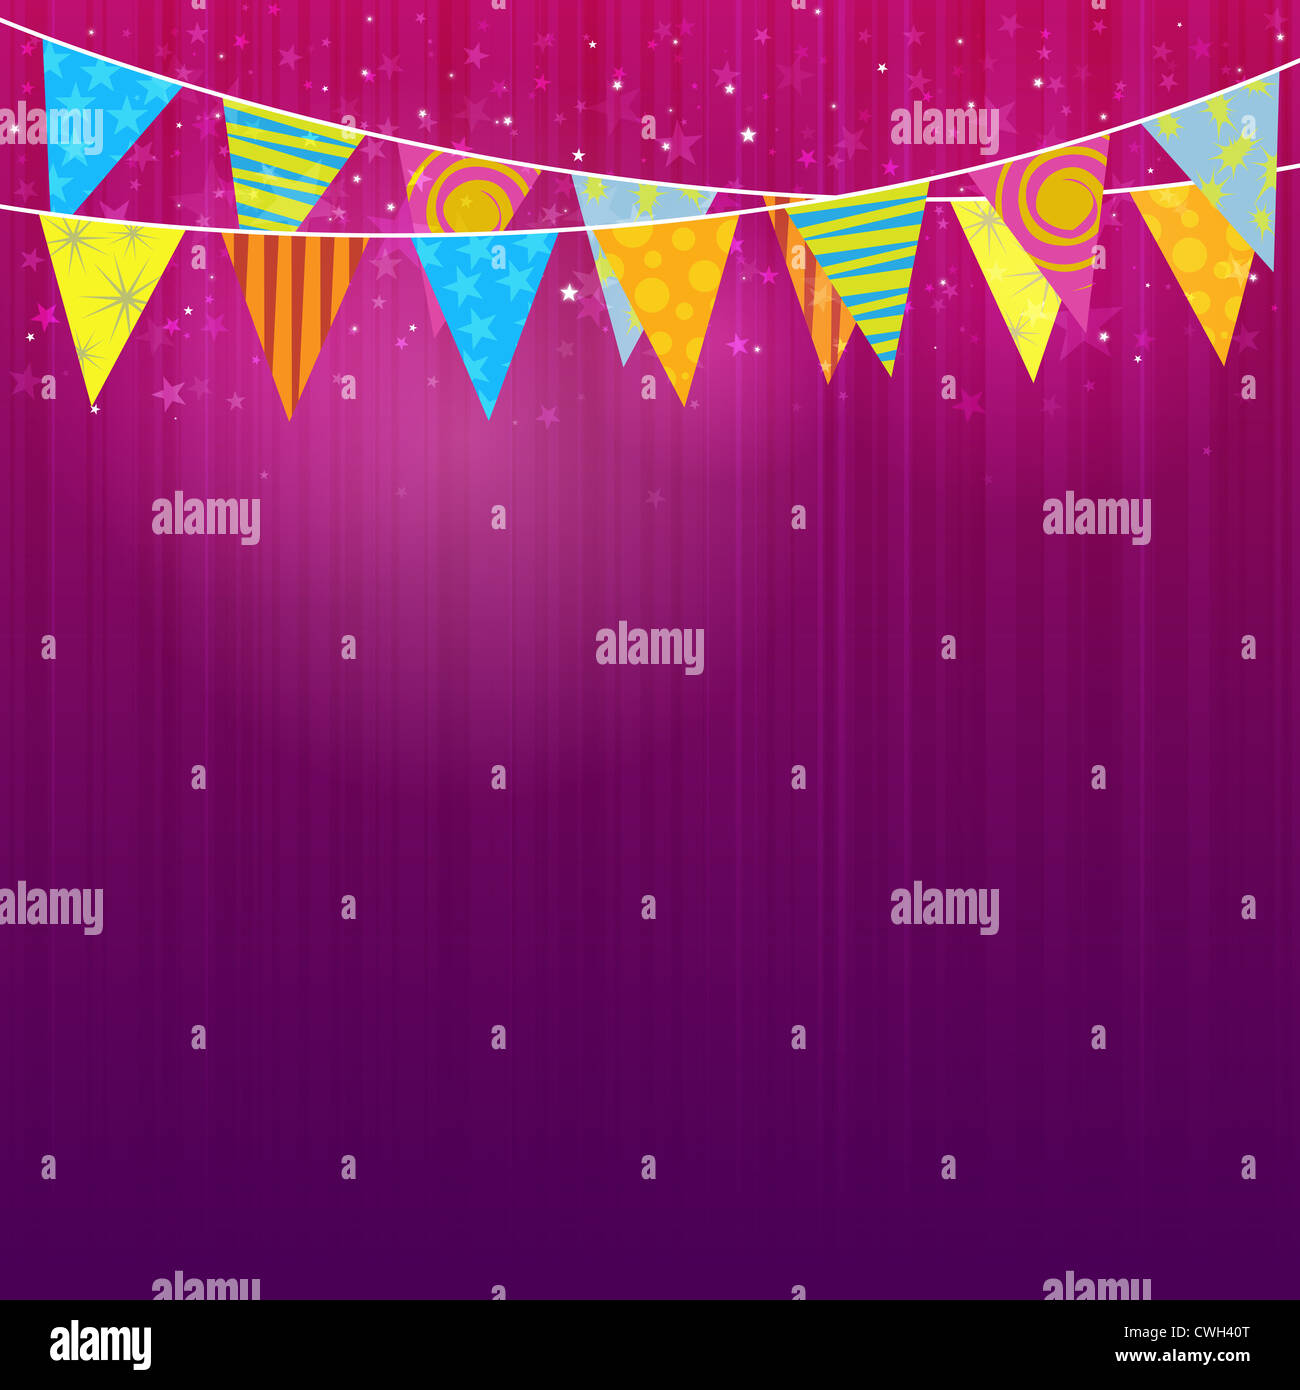 Background Of Purple Colors With Party Flags For Celebrations Stock Photo Alamy